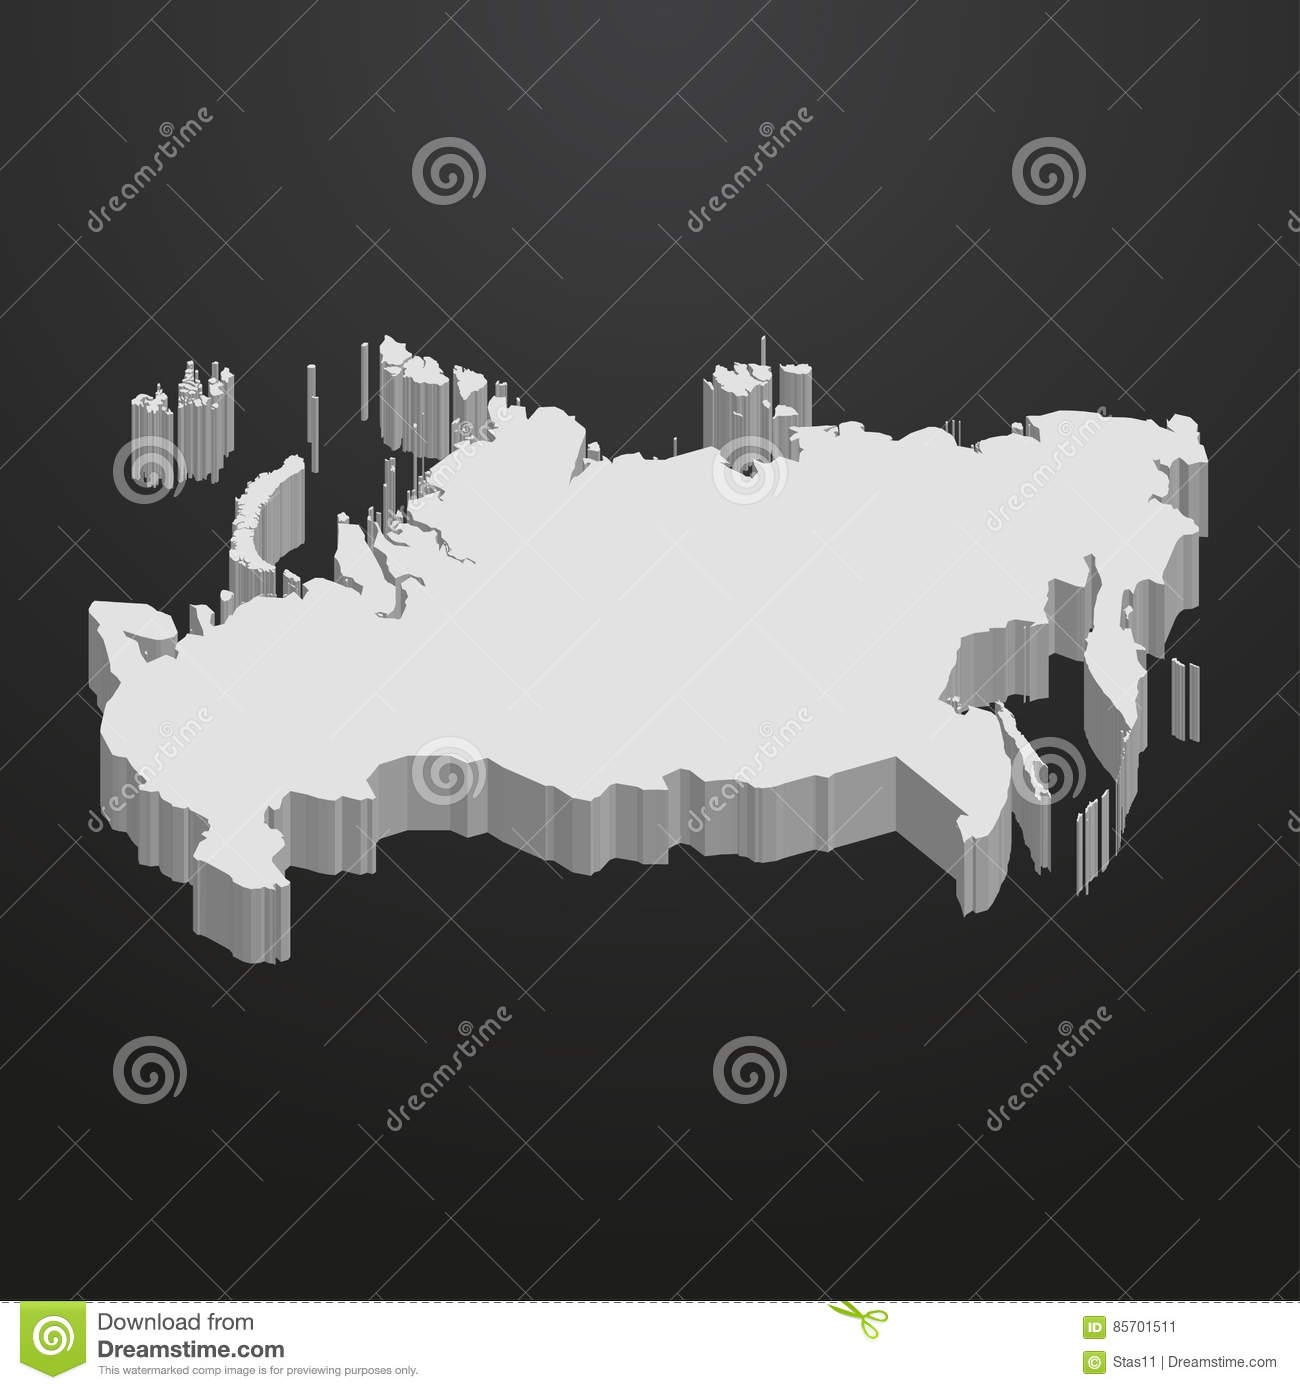 Russia Map In Gray On A Black Background 3d Stock Vector ... on blank map of russia and ukraine, blank outline map russia, fill in maps of russia, large blank map of russia, blagoveshchensk russia, blank map of russia and the republics, kuril islands on map of russia, printable map russia, blank russian map, physical features of russia, google maps russia, outline of russia, blank political map of russia, blank map of western russia, blank physical map of russia, blackline map of russia, how close is alaska to russia, new siberian islands russia, blank russia map with rivers, blank map of russia and neighboring countries,